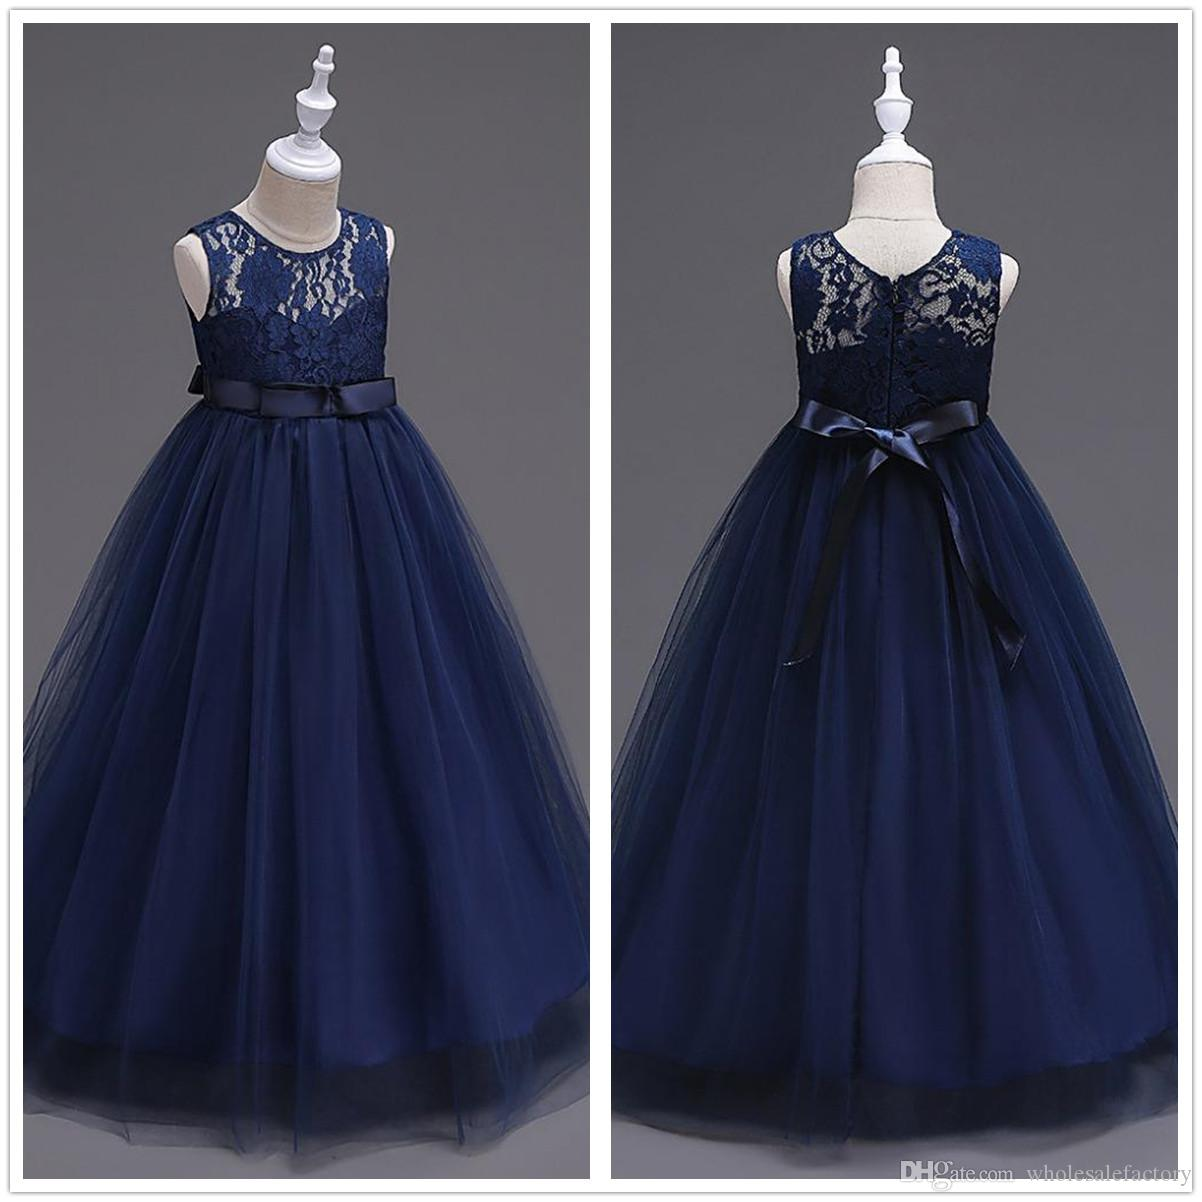 9dab6016bf Cute Navy Blue Tulle A Line Sash Long Flower Girls  Dresses Crew Neck  Sleeveless Lace Top Birthday Party Little Girl Dresses In Stock MC0889